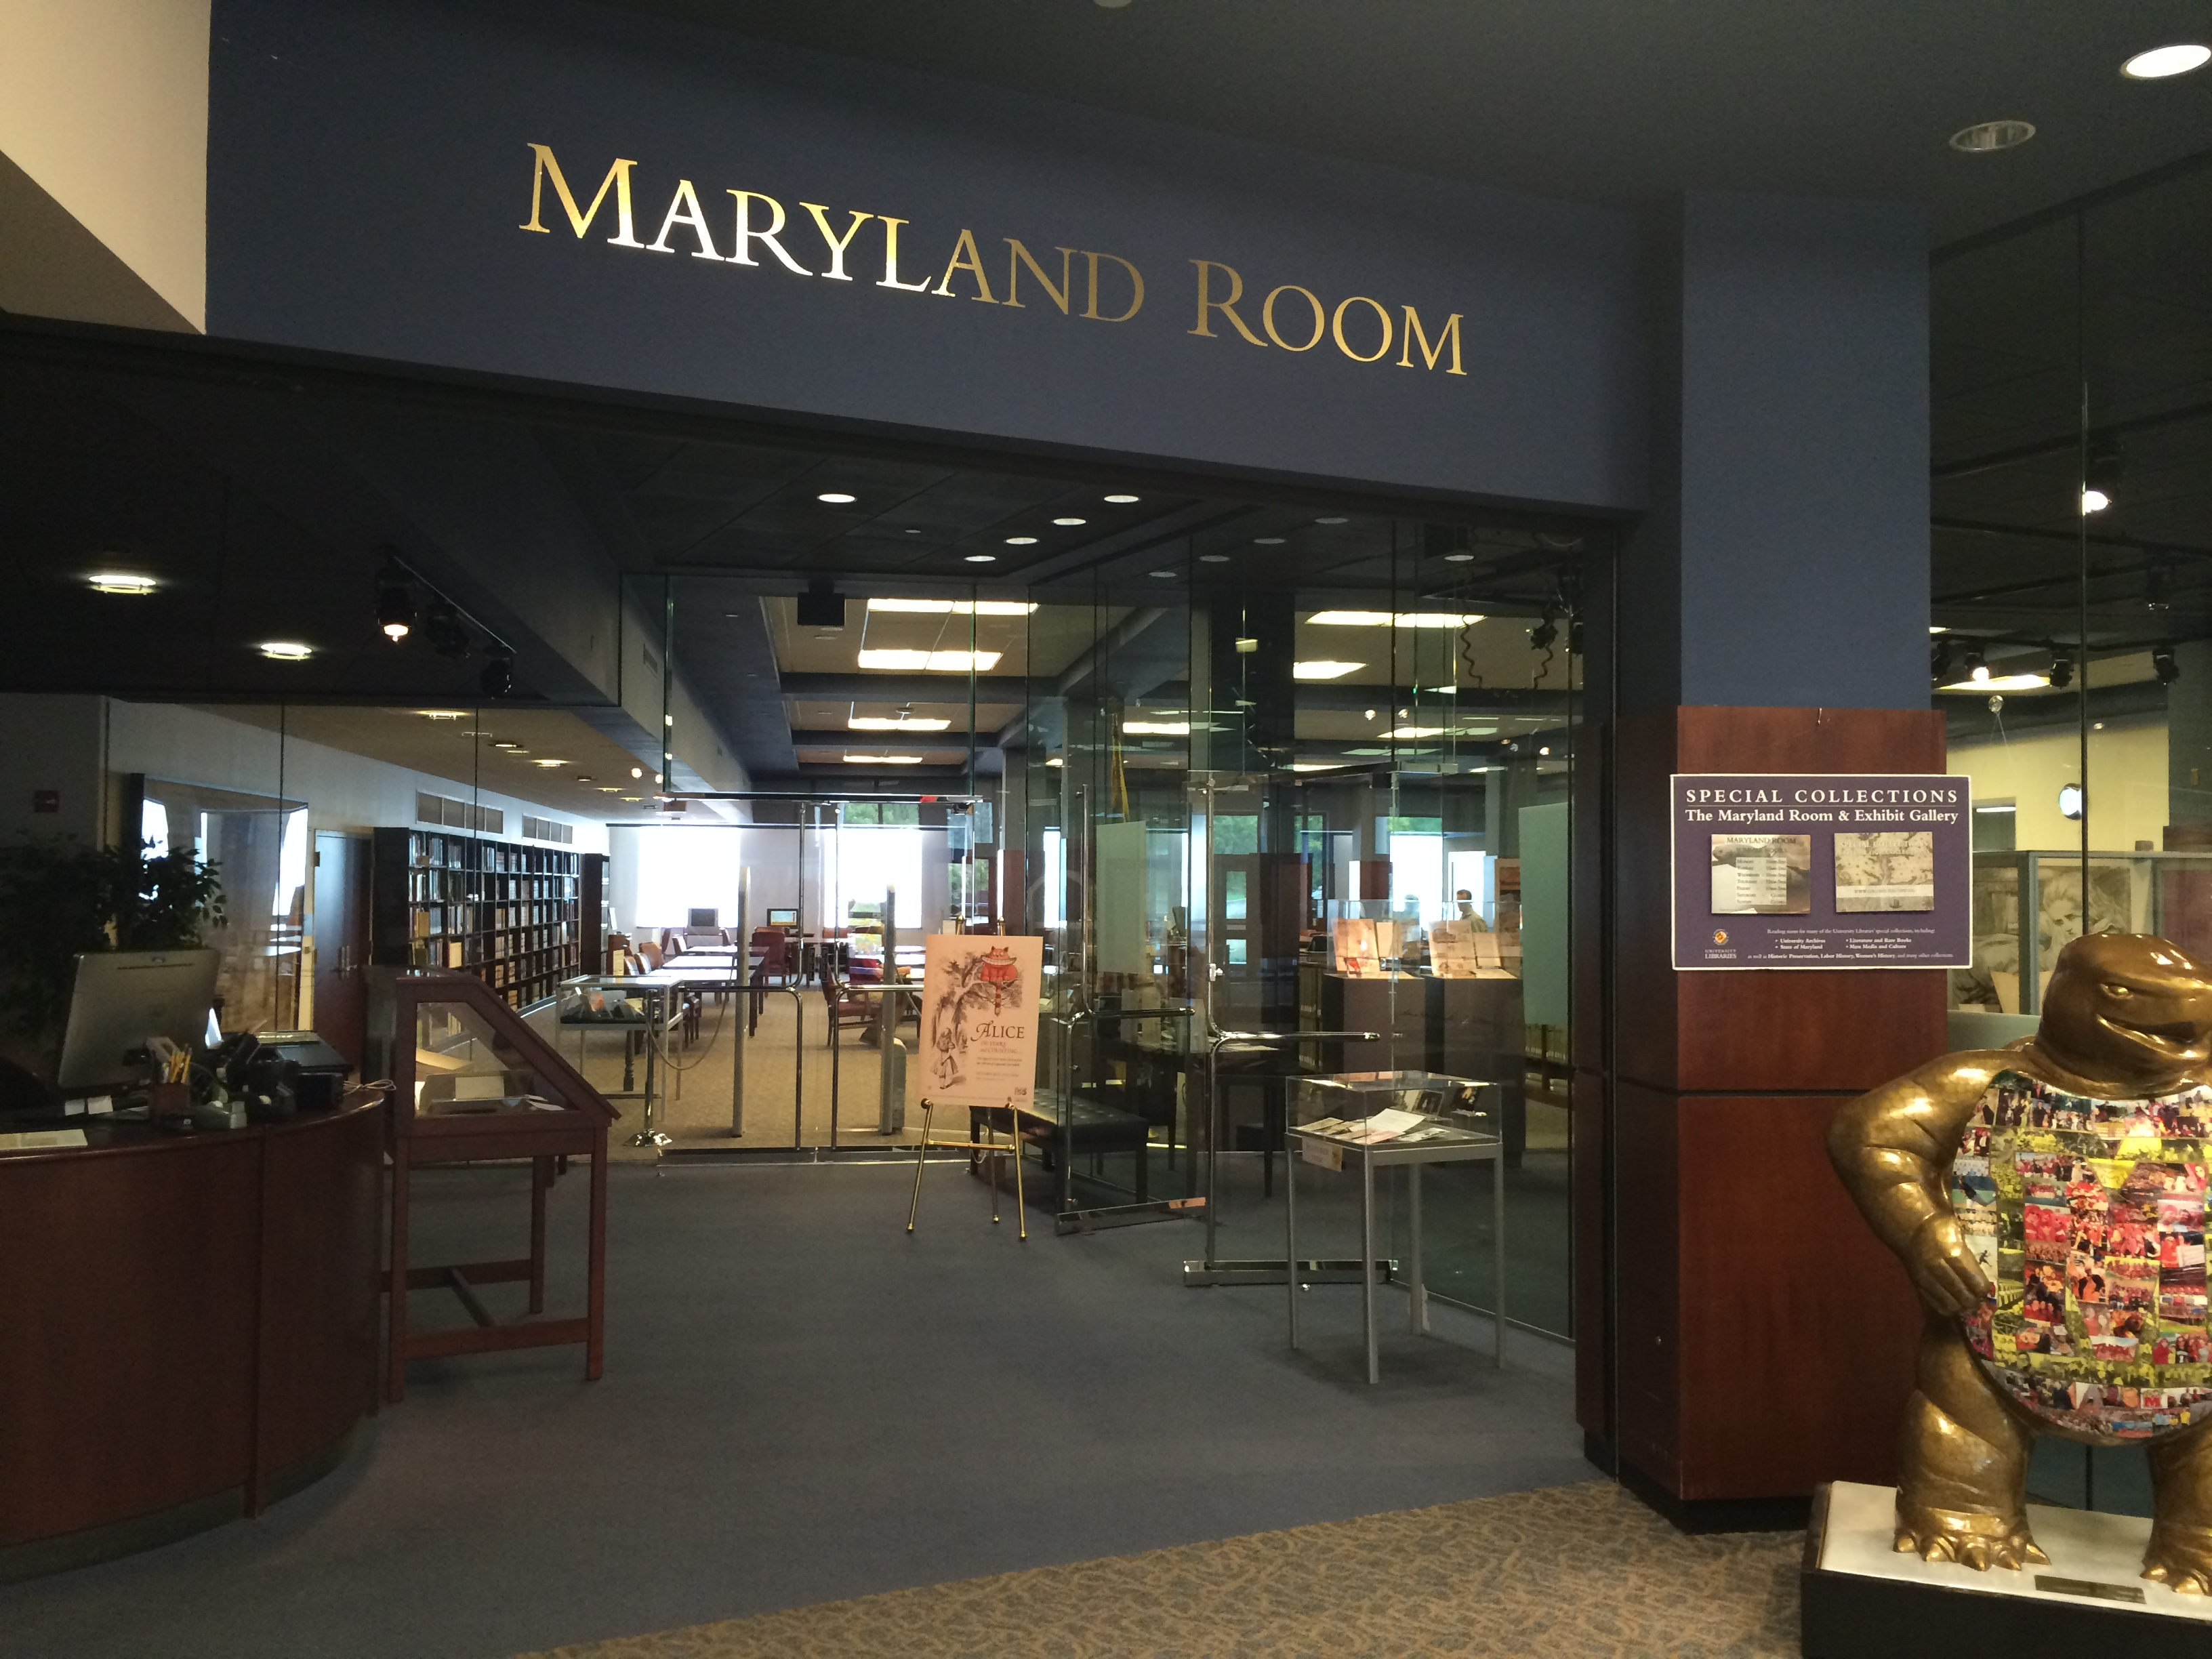 the Maryland Room, Hornbake Library North 1st floor